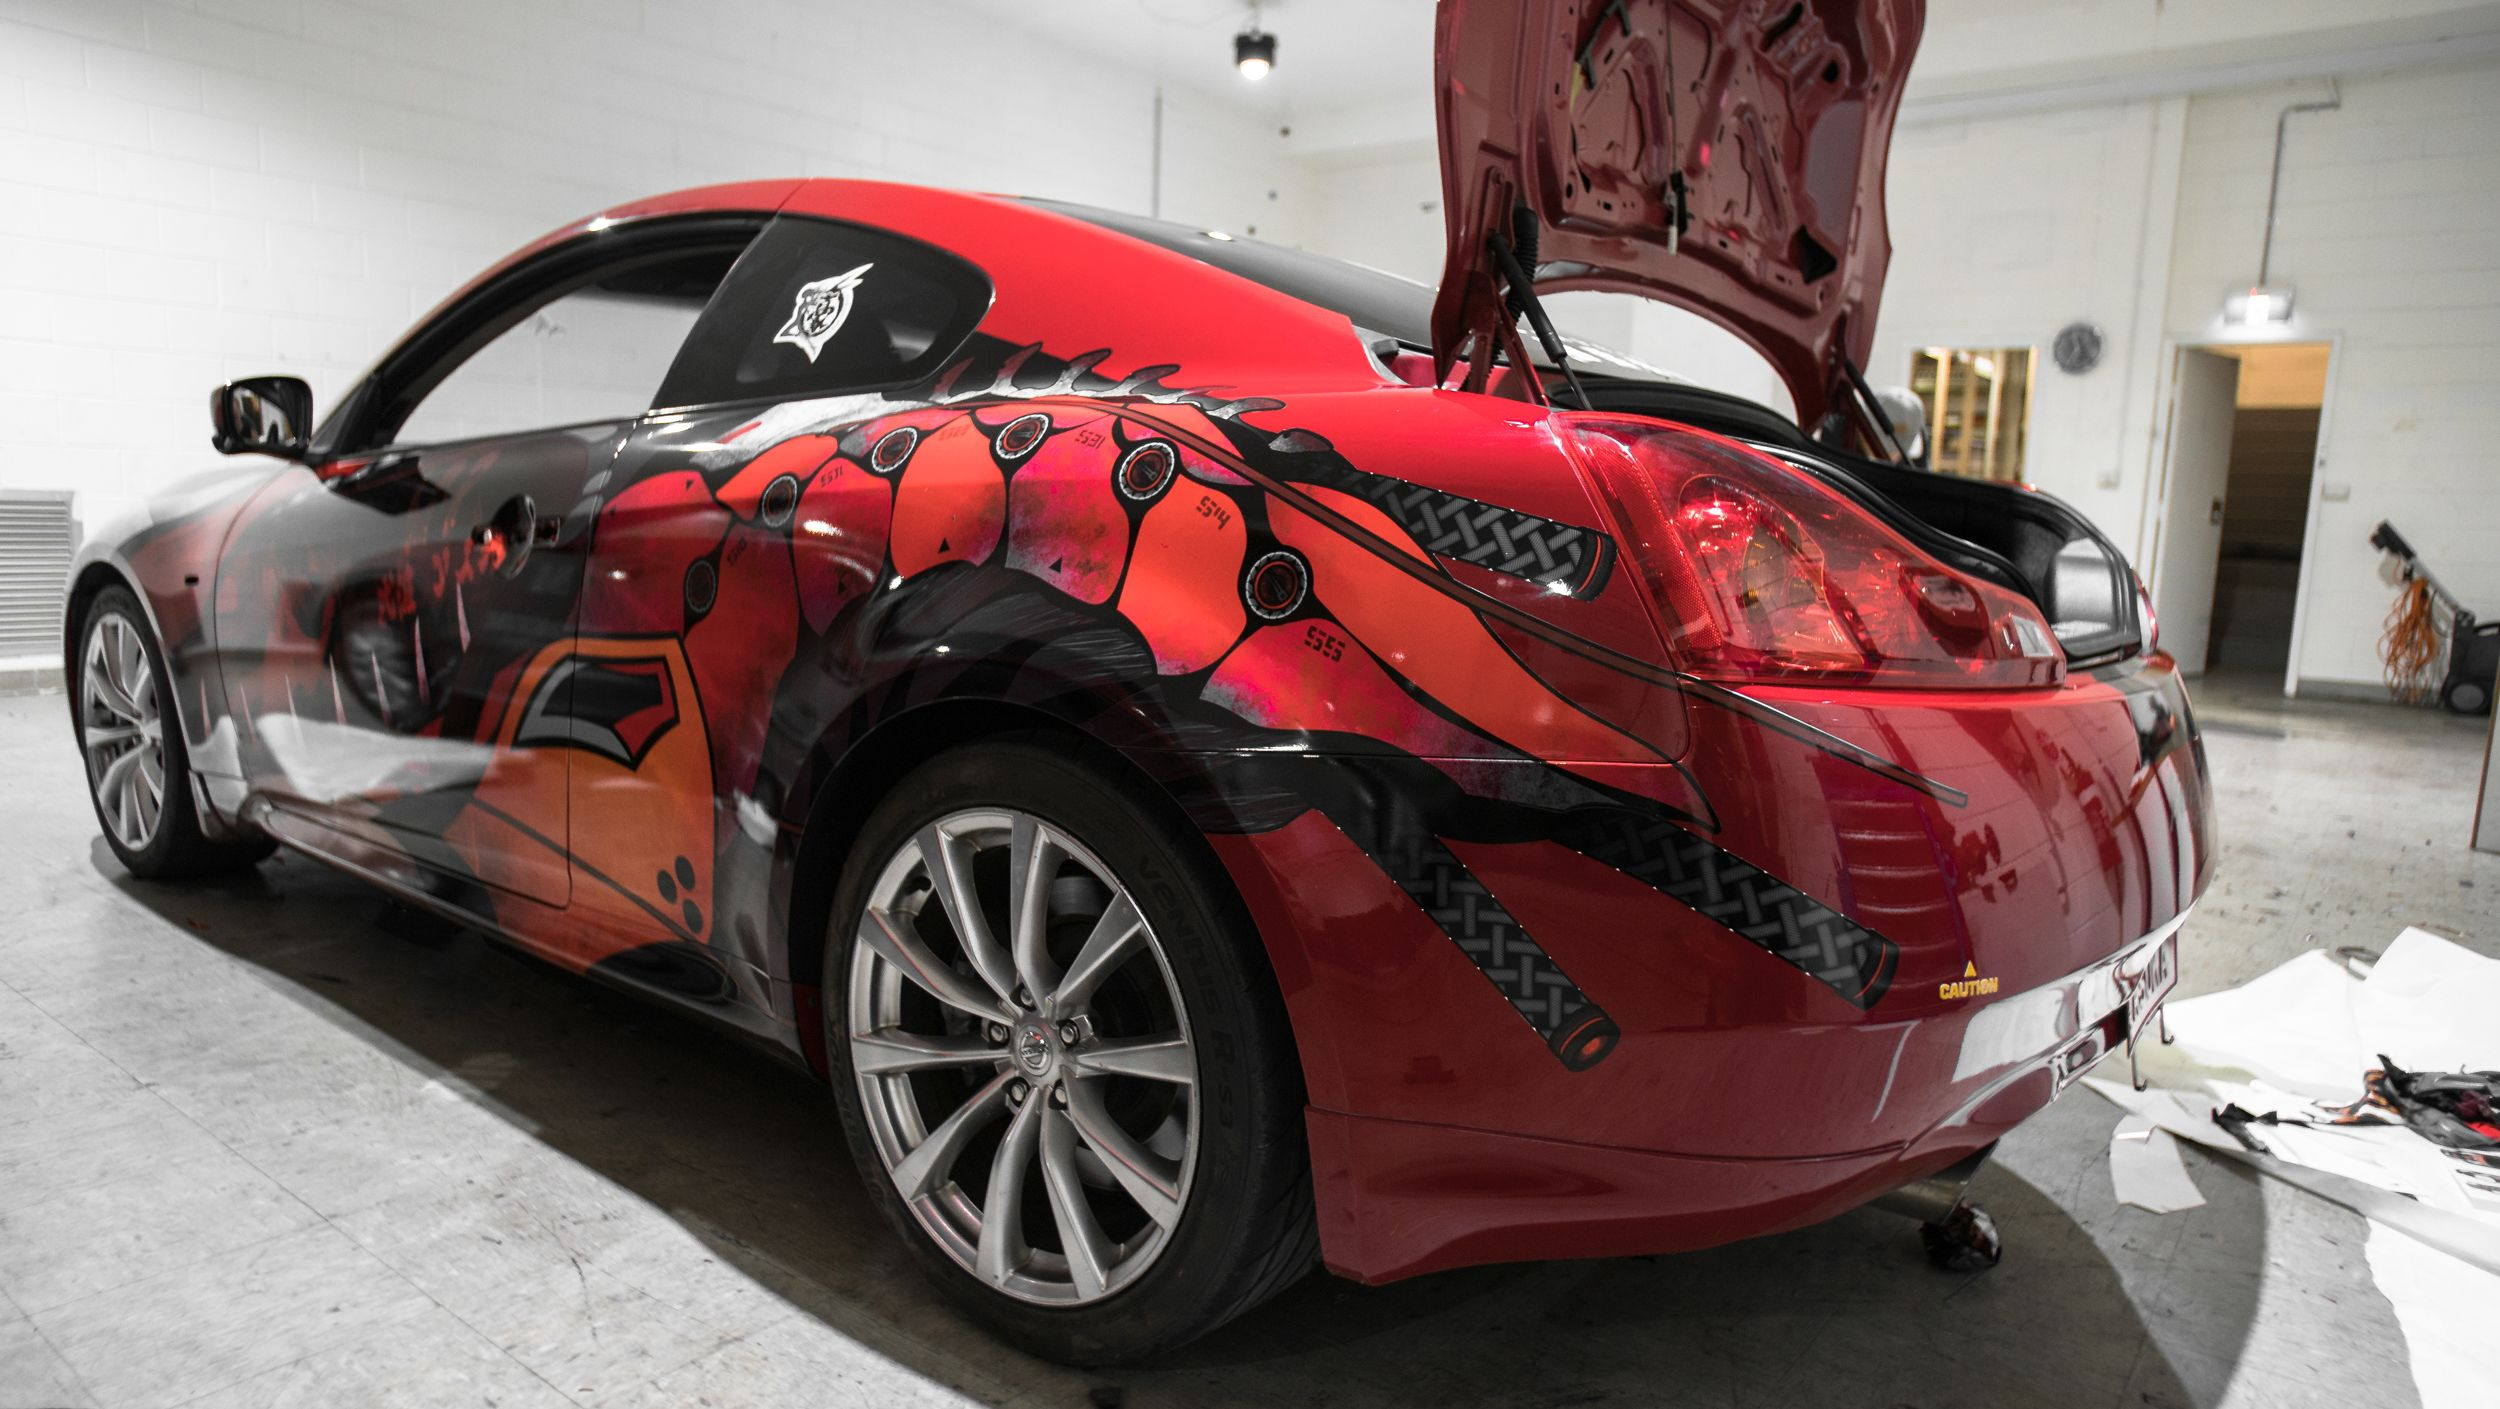 A Crazy Custom Wrap On This Infiniti G37, Befitting The Owners Crazy Taste!